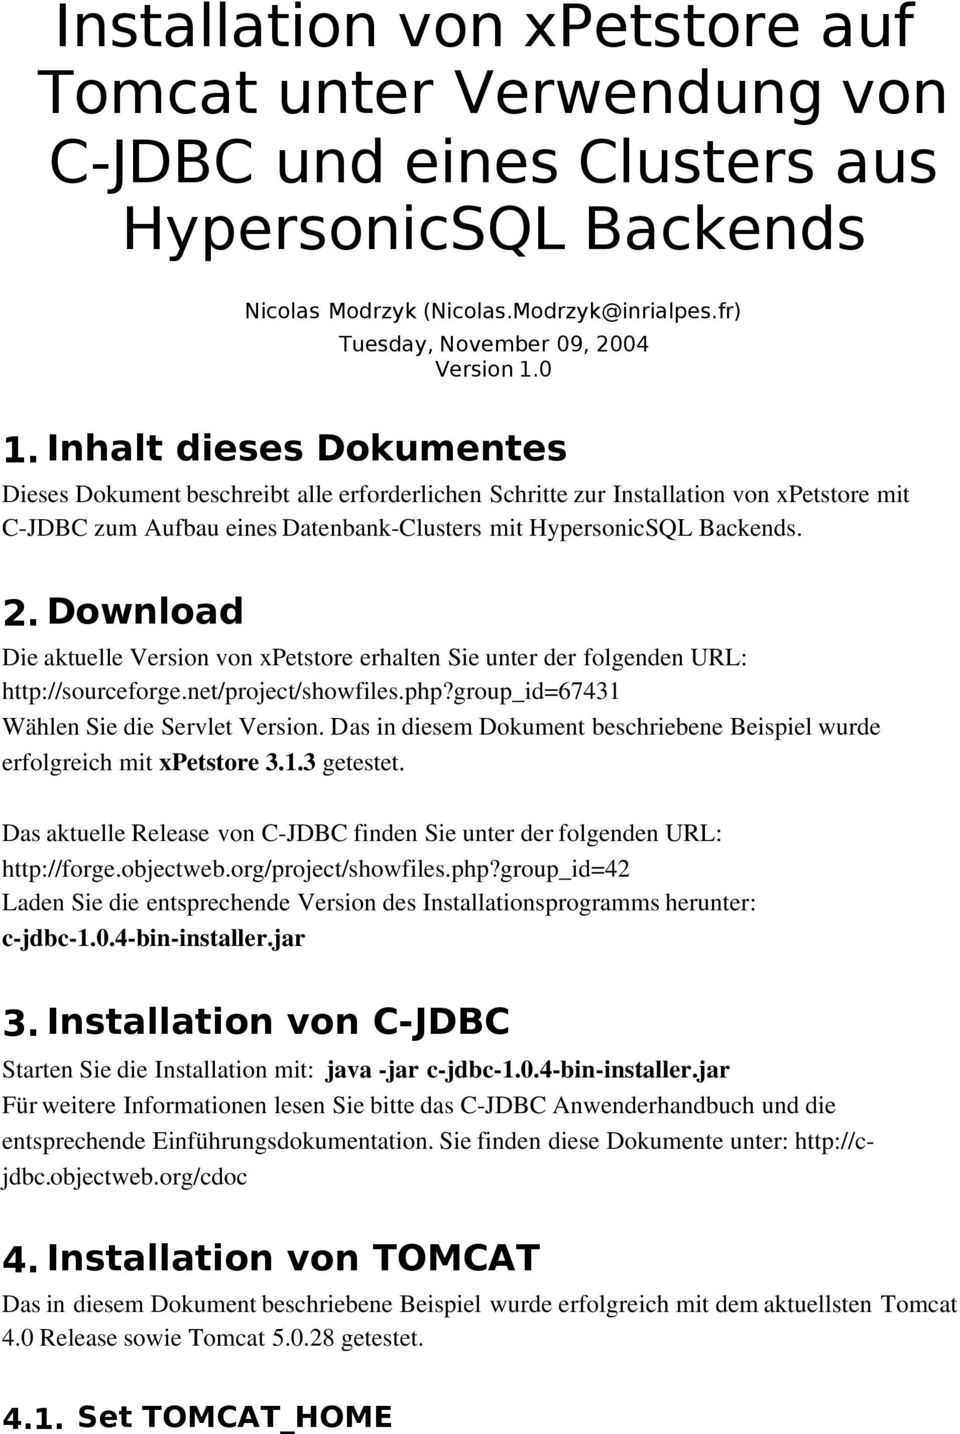 Download Die aktuelle Version von xpetstore erhalten Sie unter der folgenden URL: http://sourceforge.net/project/showfiles.php?group_id=67431 Wählen Sie die Servlet Version.